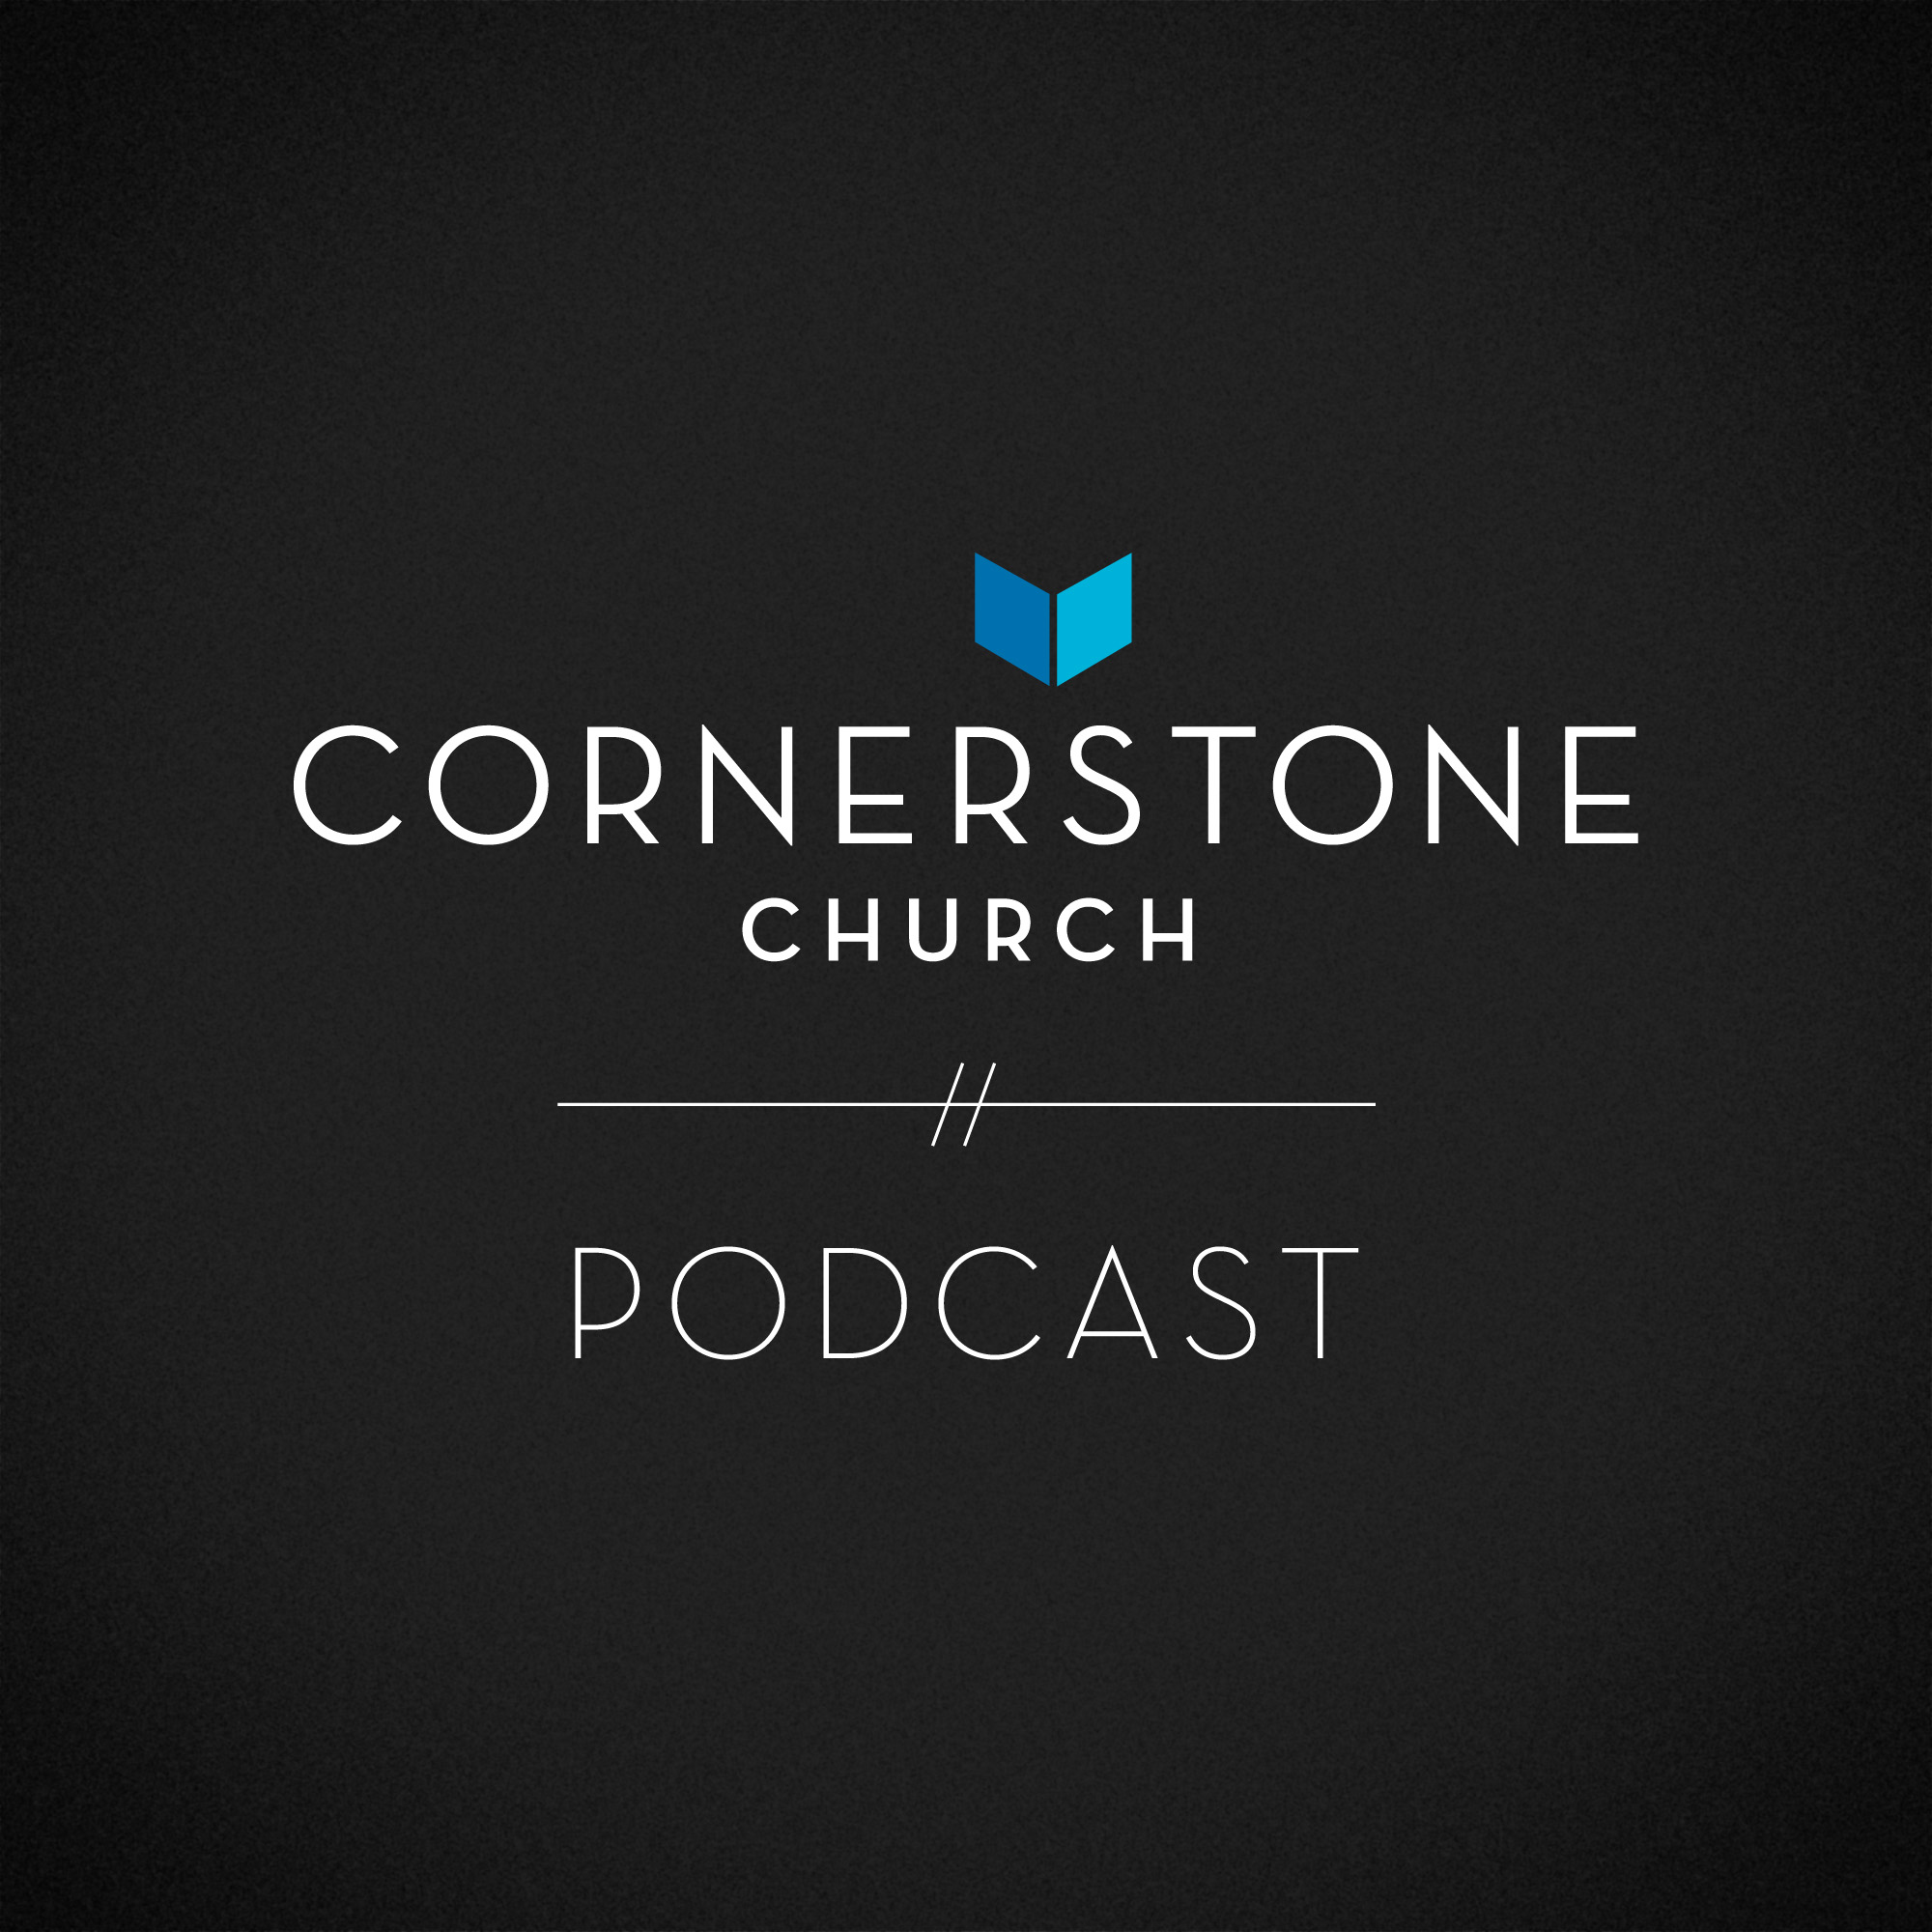 Cornerstone Church Johannesburg